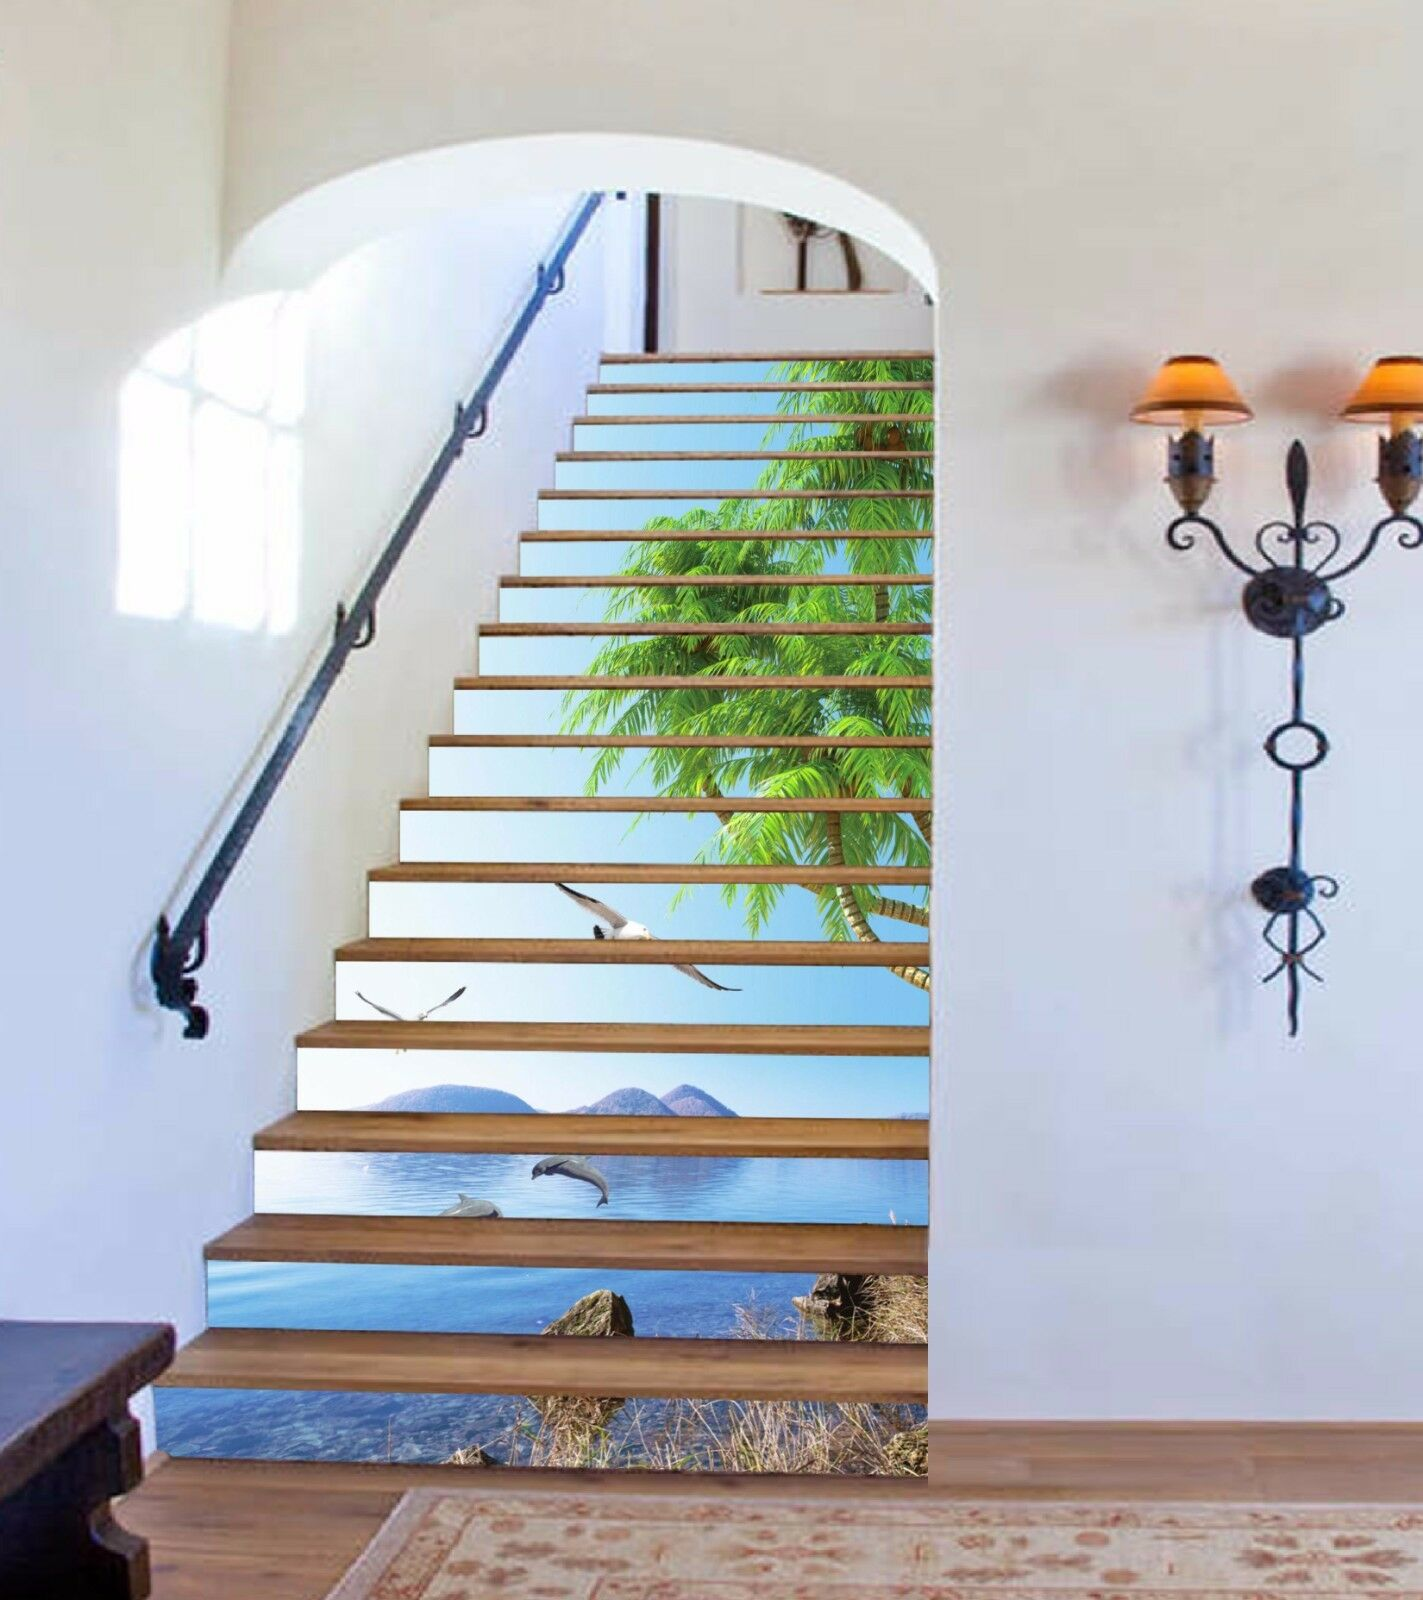 3D Sea Scenery 725 Stair Risers Decoration Photo Mural Vinyl Decal WandPapier AU